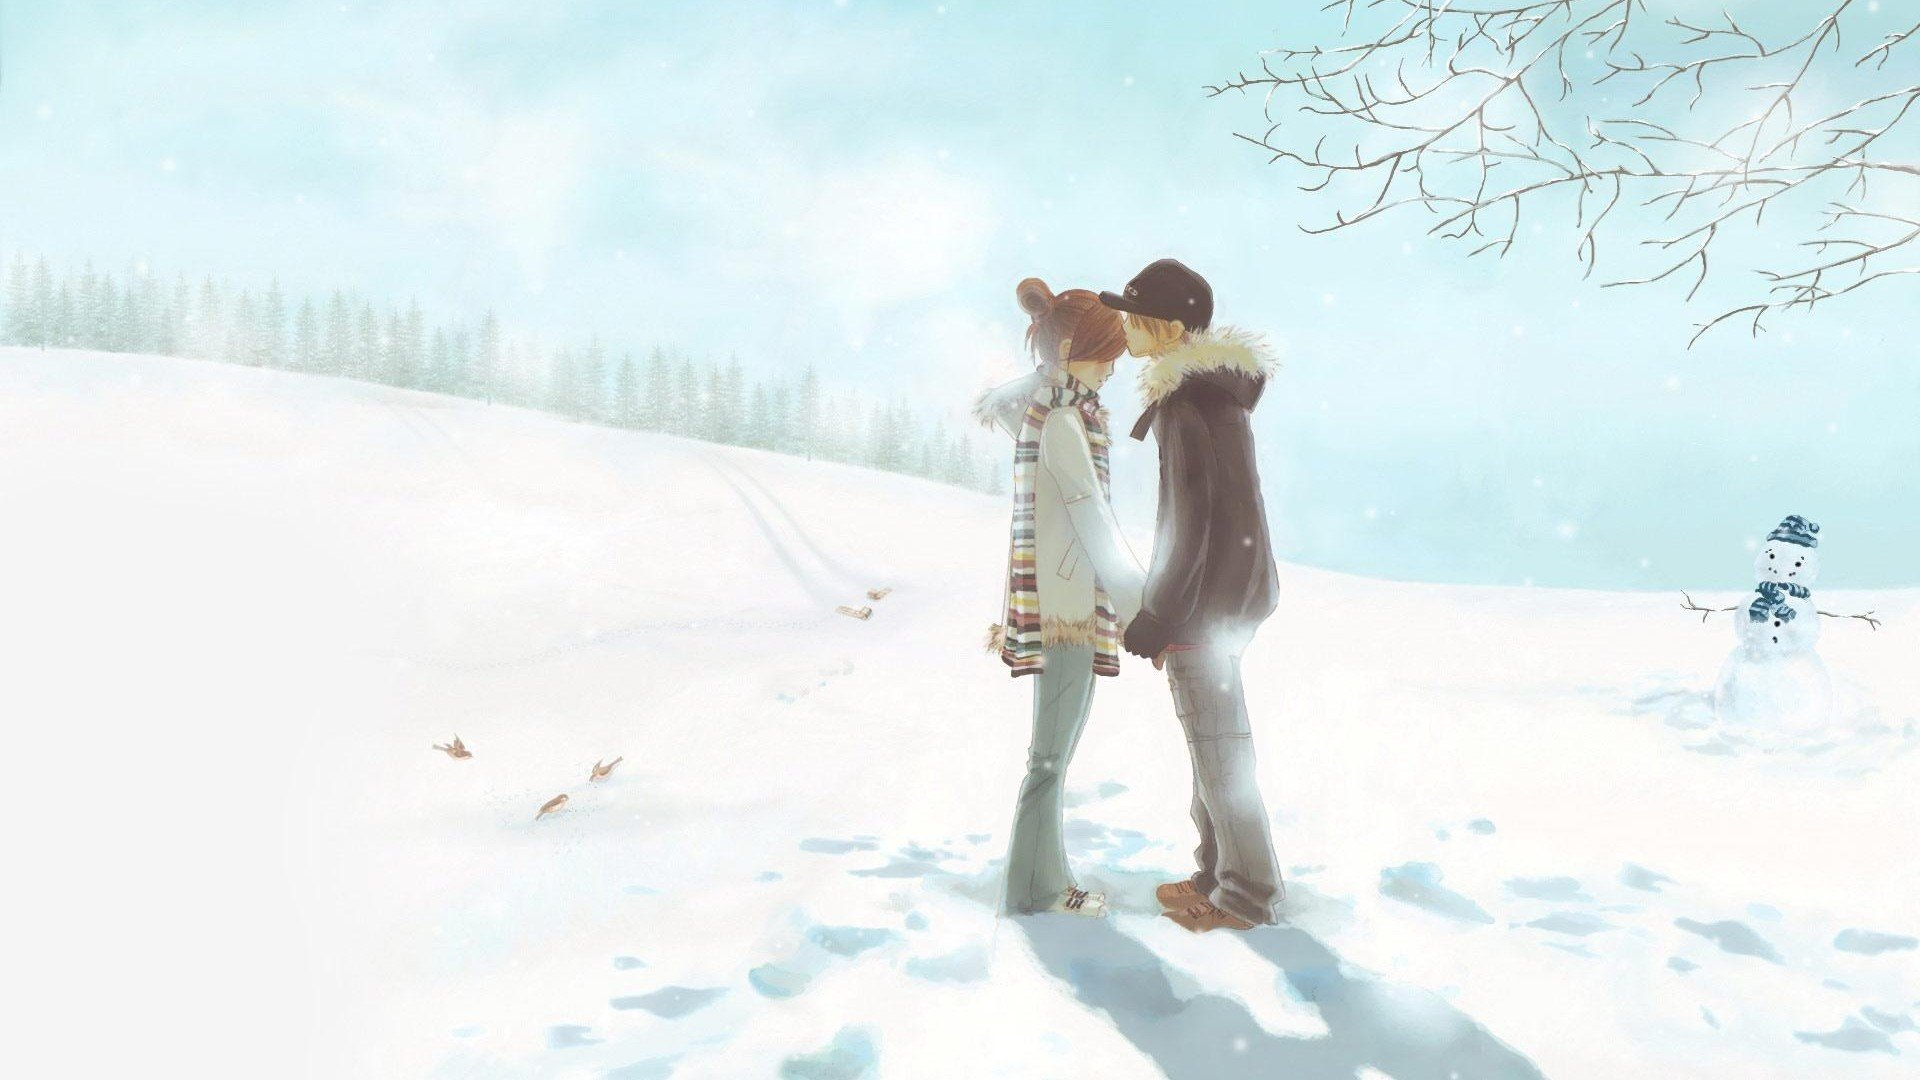 Cute Anime Couple Wallpaper 18880 Wallpapers Coolz HD 1920x1080